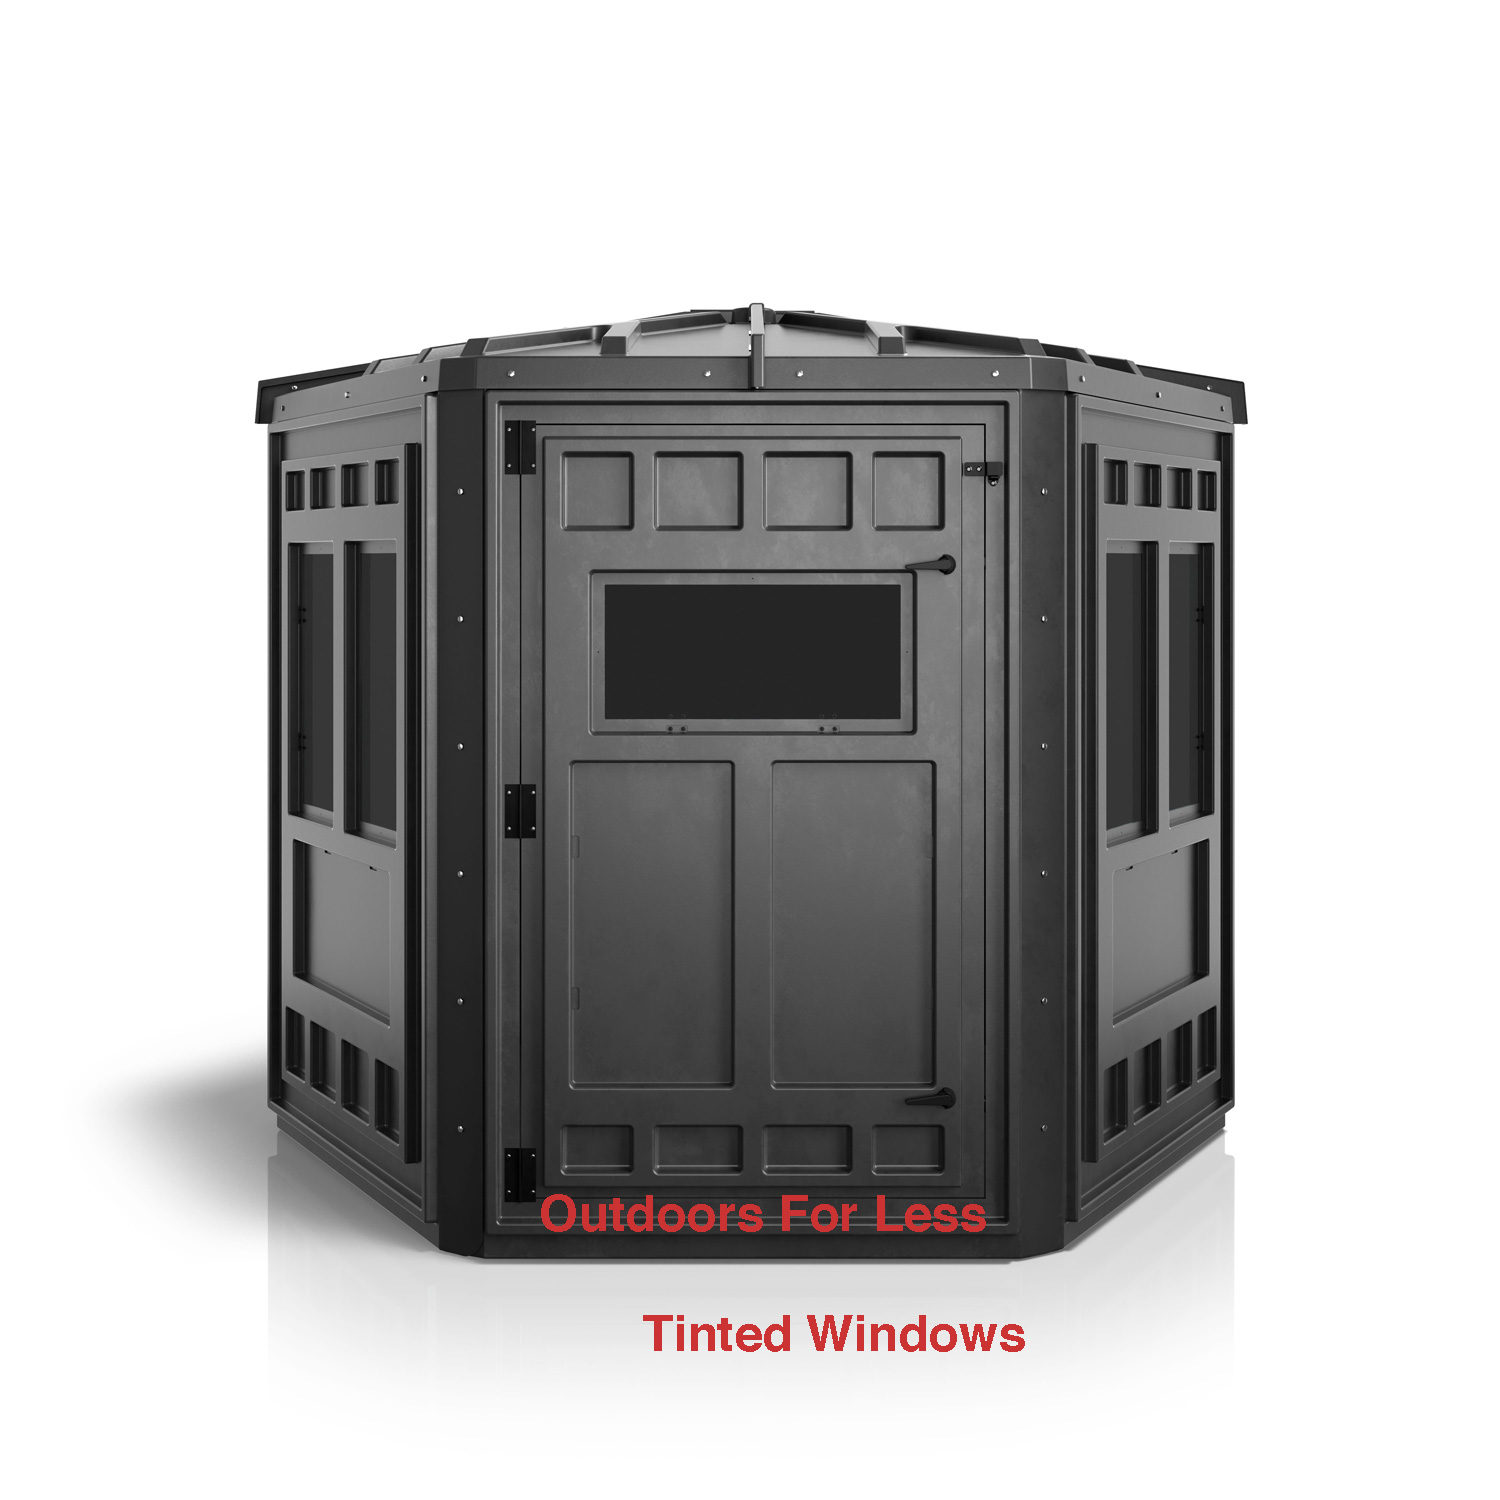 Booner 6-Panel Thunderdome Deer Hunting Blind 87 in. x 82 in.